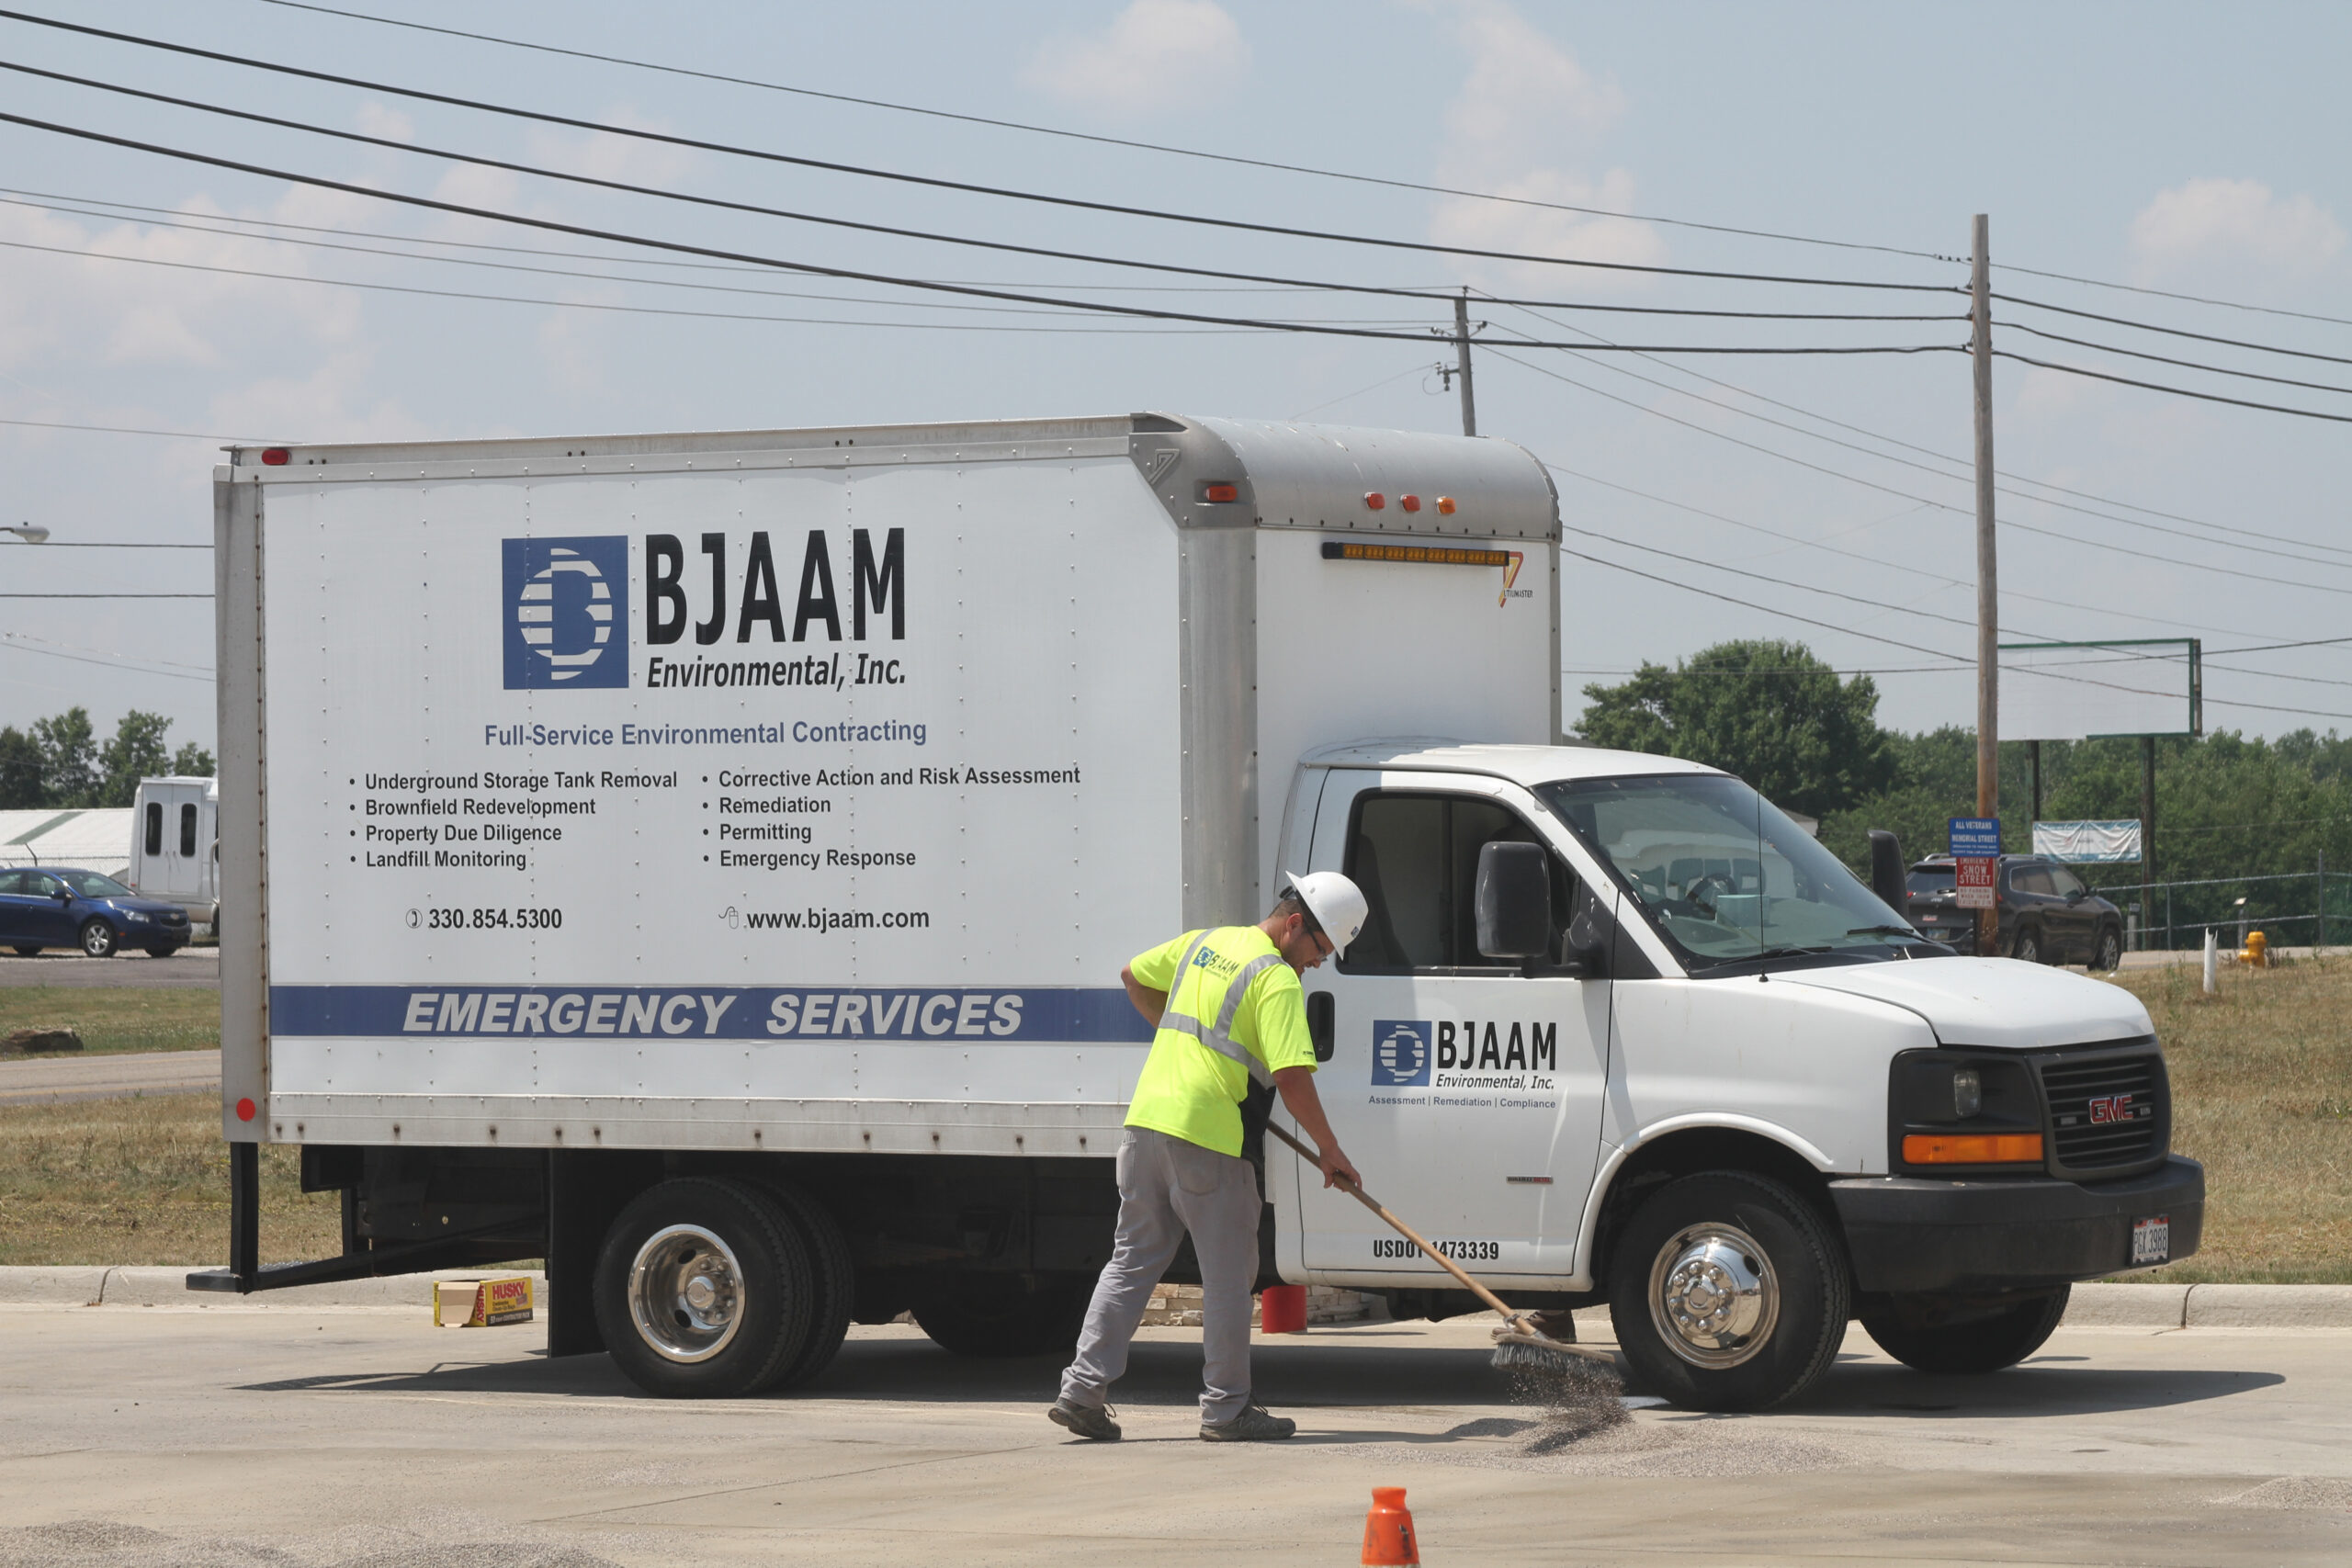 BJAAM employee sweeping in front of the company's Emergency Services truck.